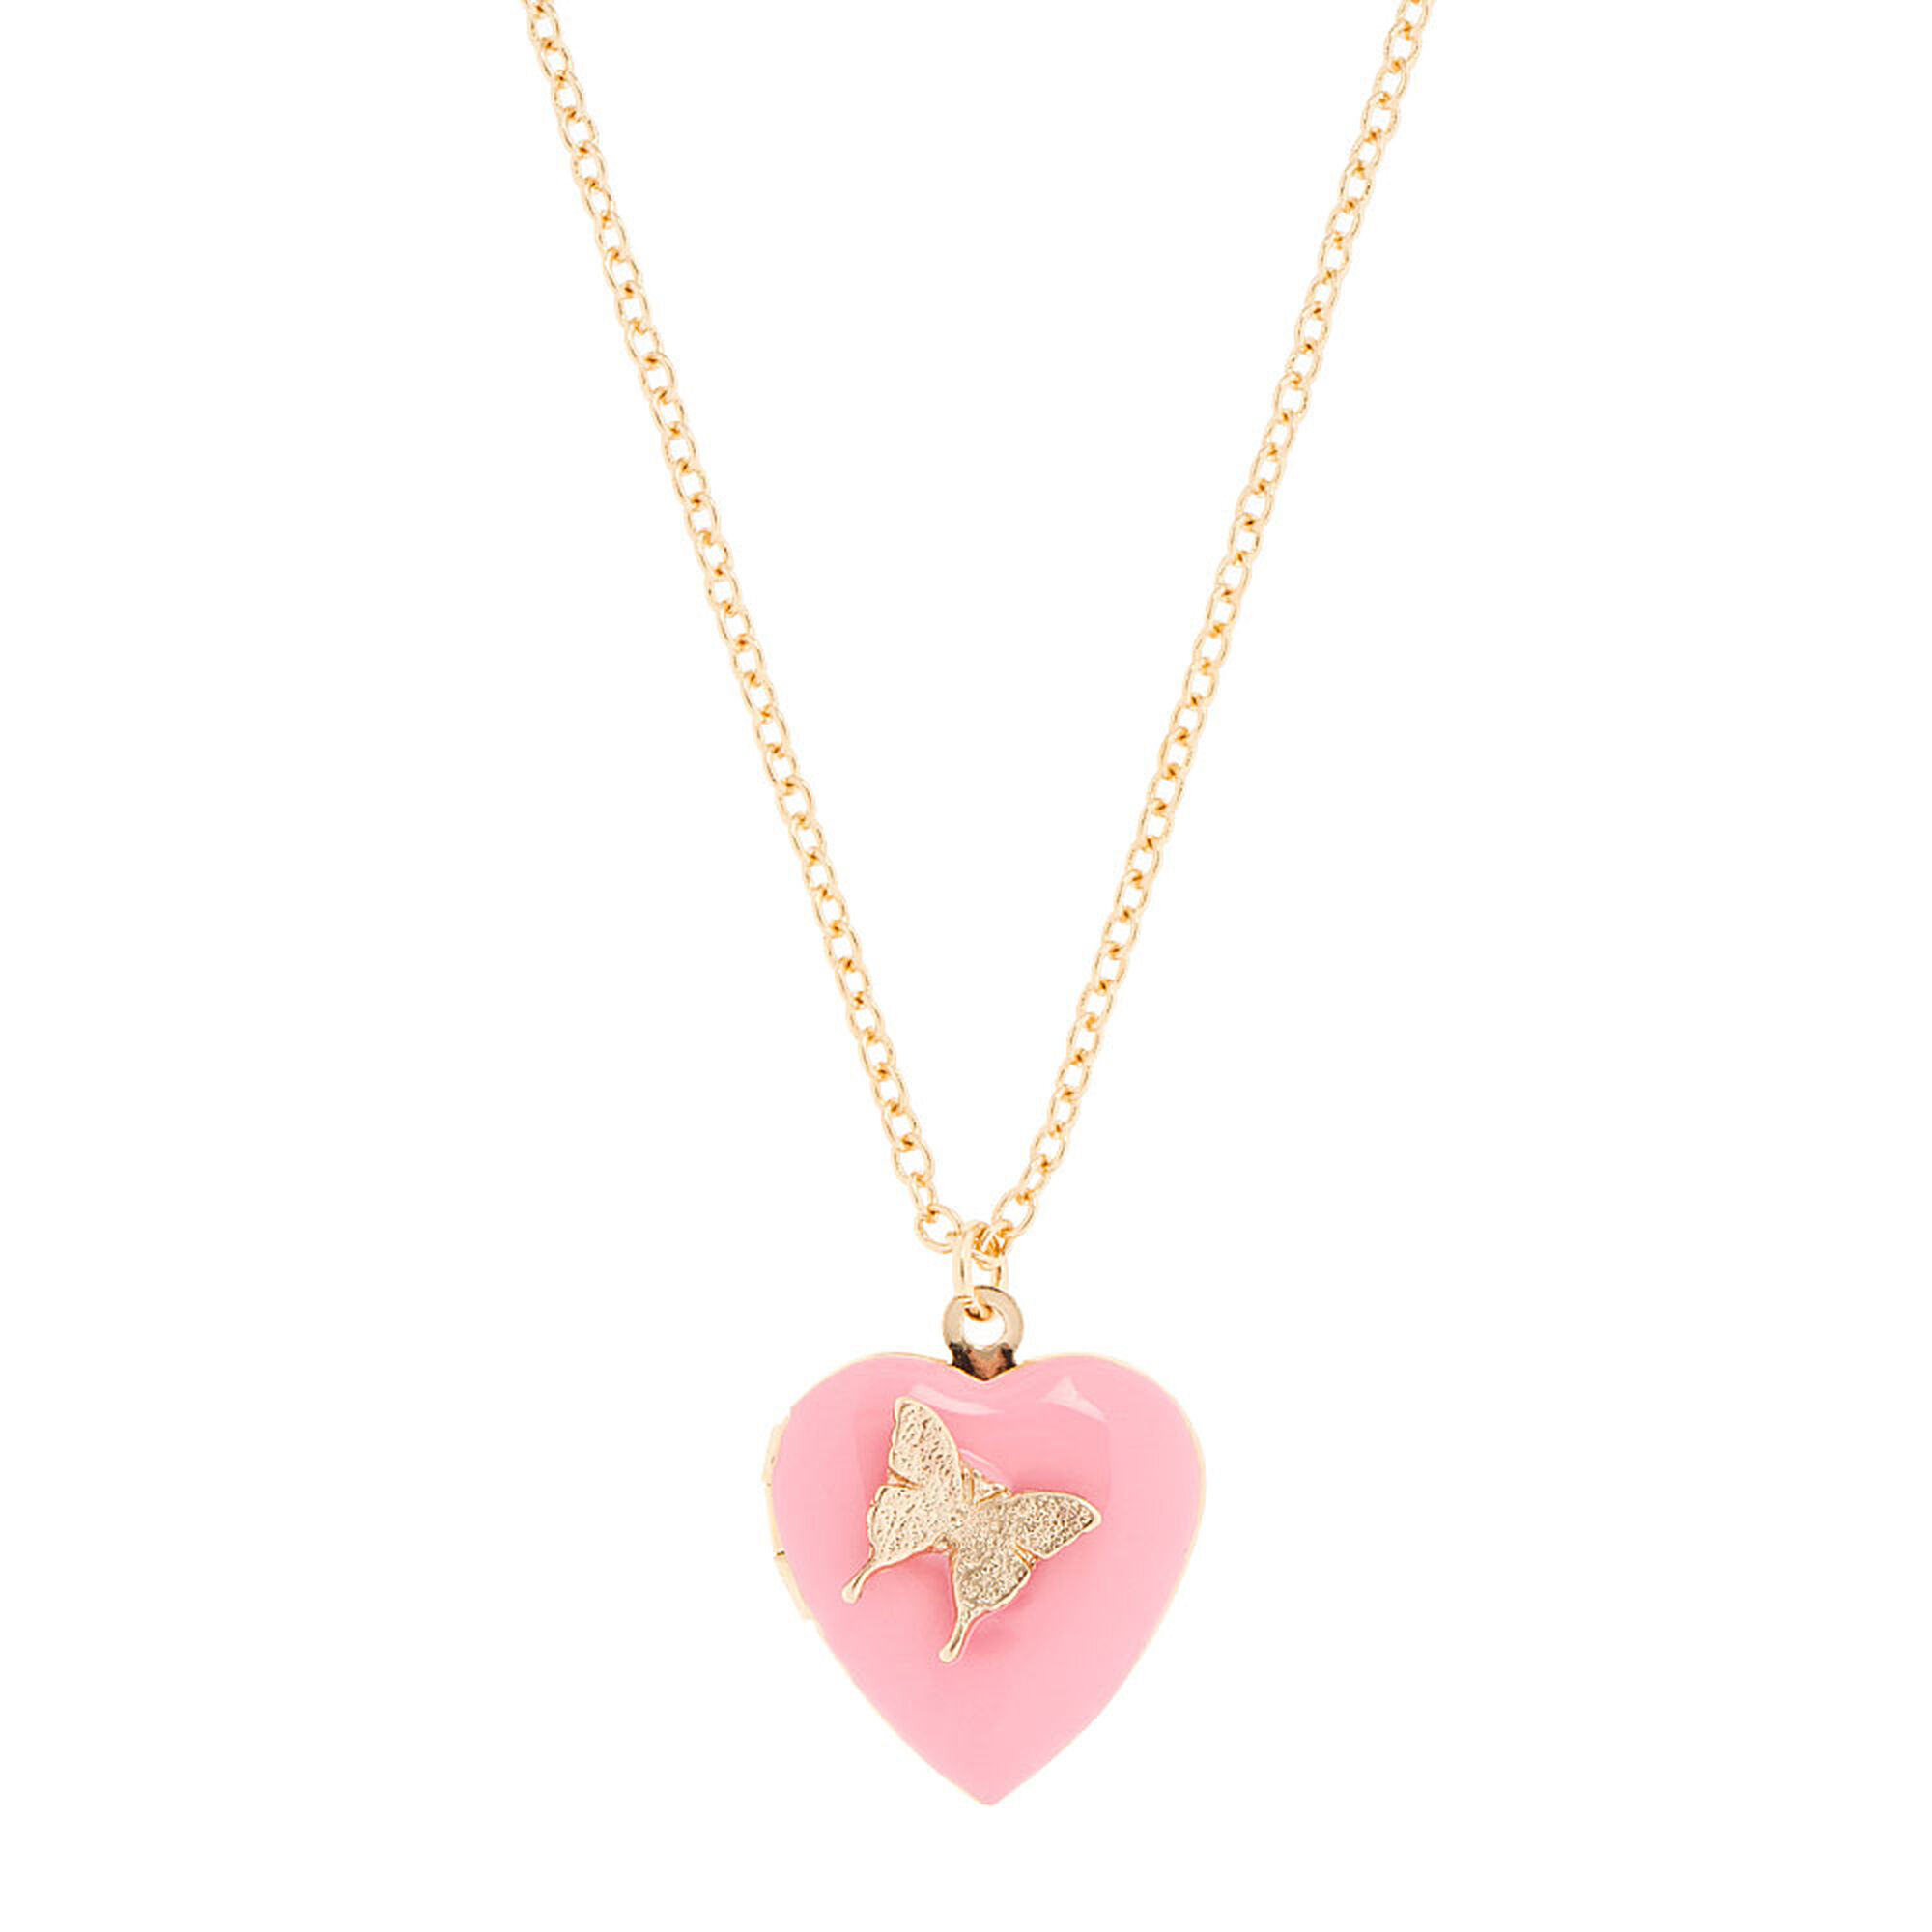 Pink heart locket with gold butterfly pendant necklace claires us pink heart locket with gold butterfly pendant necklace aloadofball Image collections